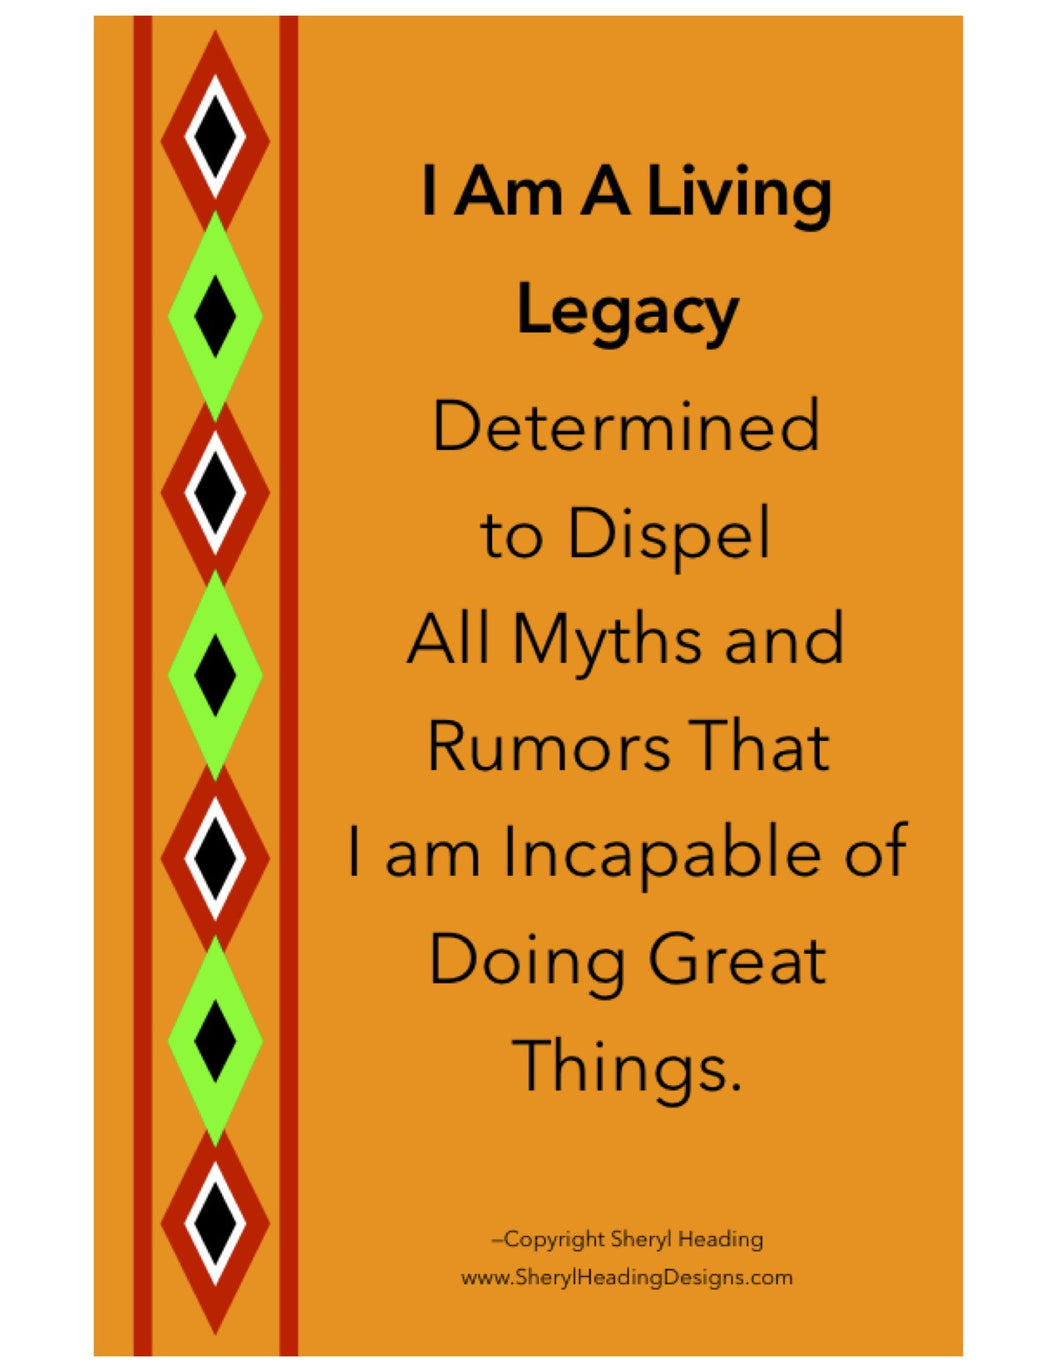 I Am A Loving Legacy Determined to Dispel All Myths and Rumors... Poster - Sheryl Heading Designs